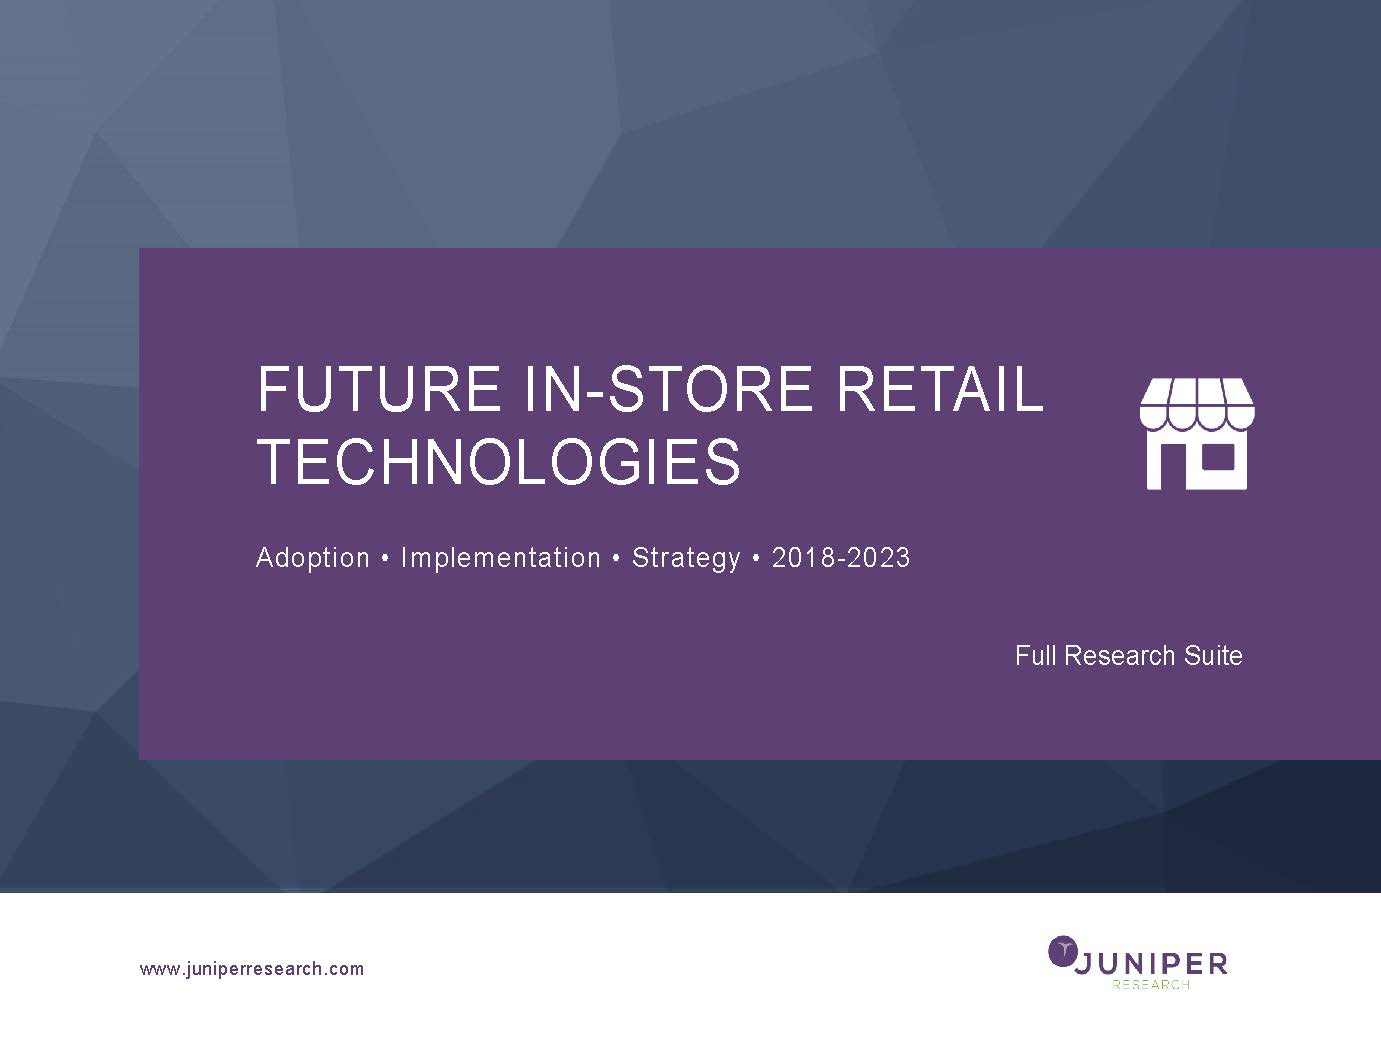 Future In-Store Retail Technologies